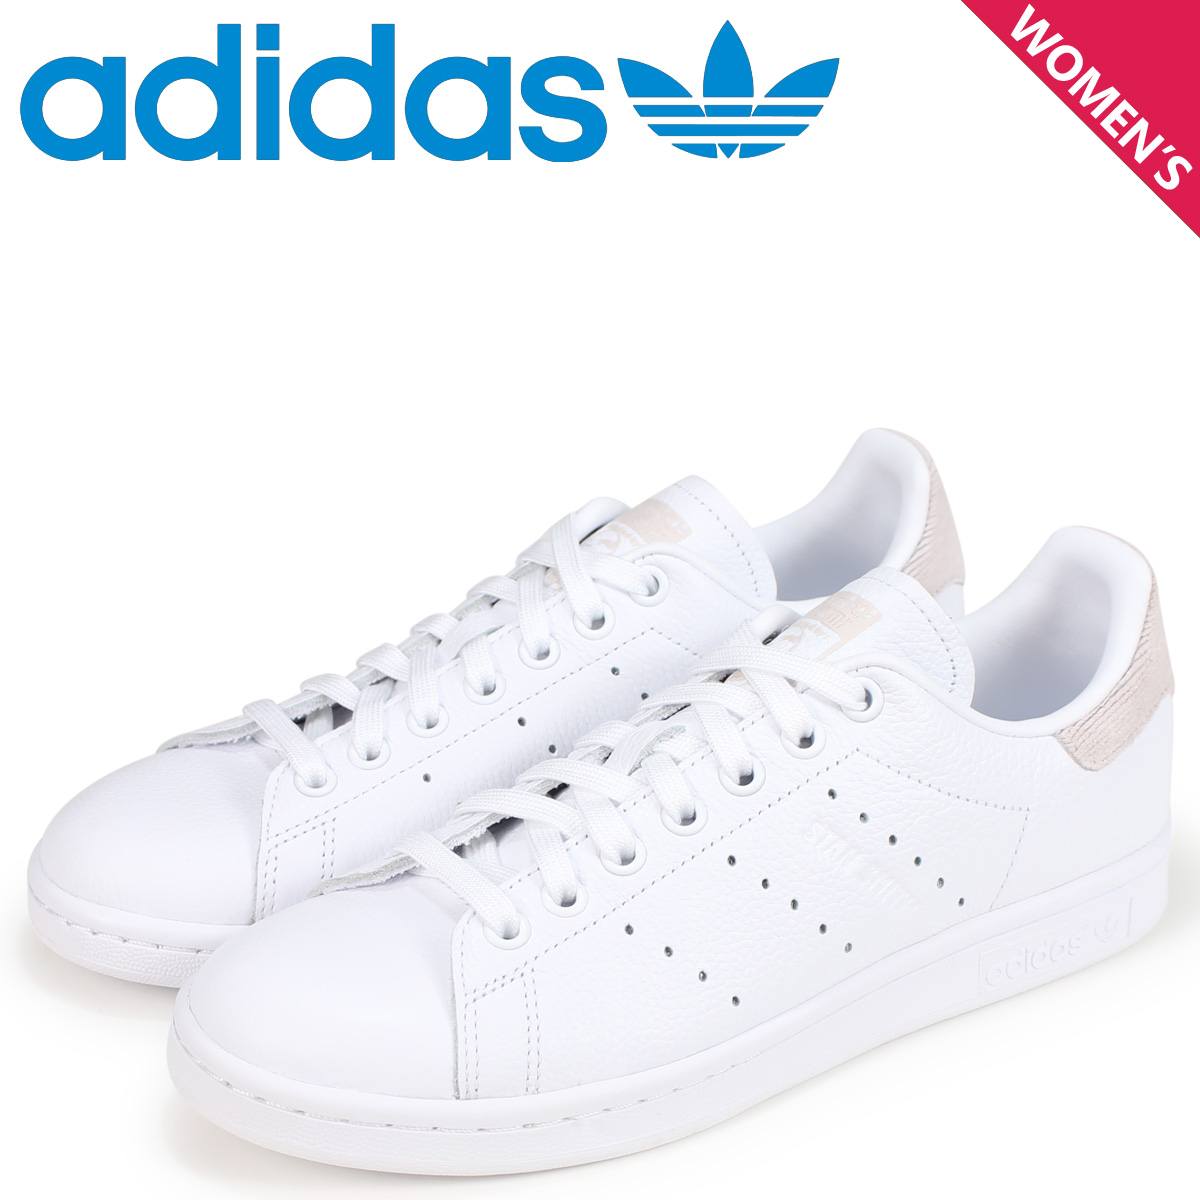 f16cf8a421 adidas Originals Stan Smith Adidas originals Lady's sneakers STAN SMITH W  B41625 white white ...